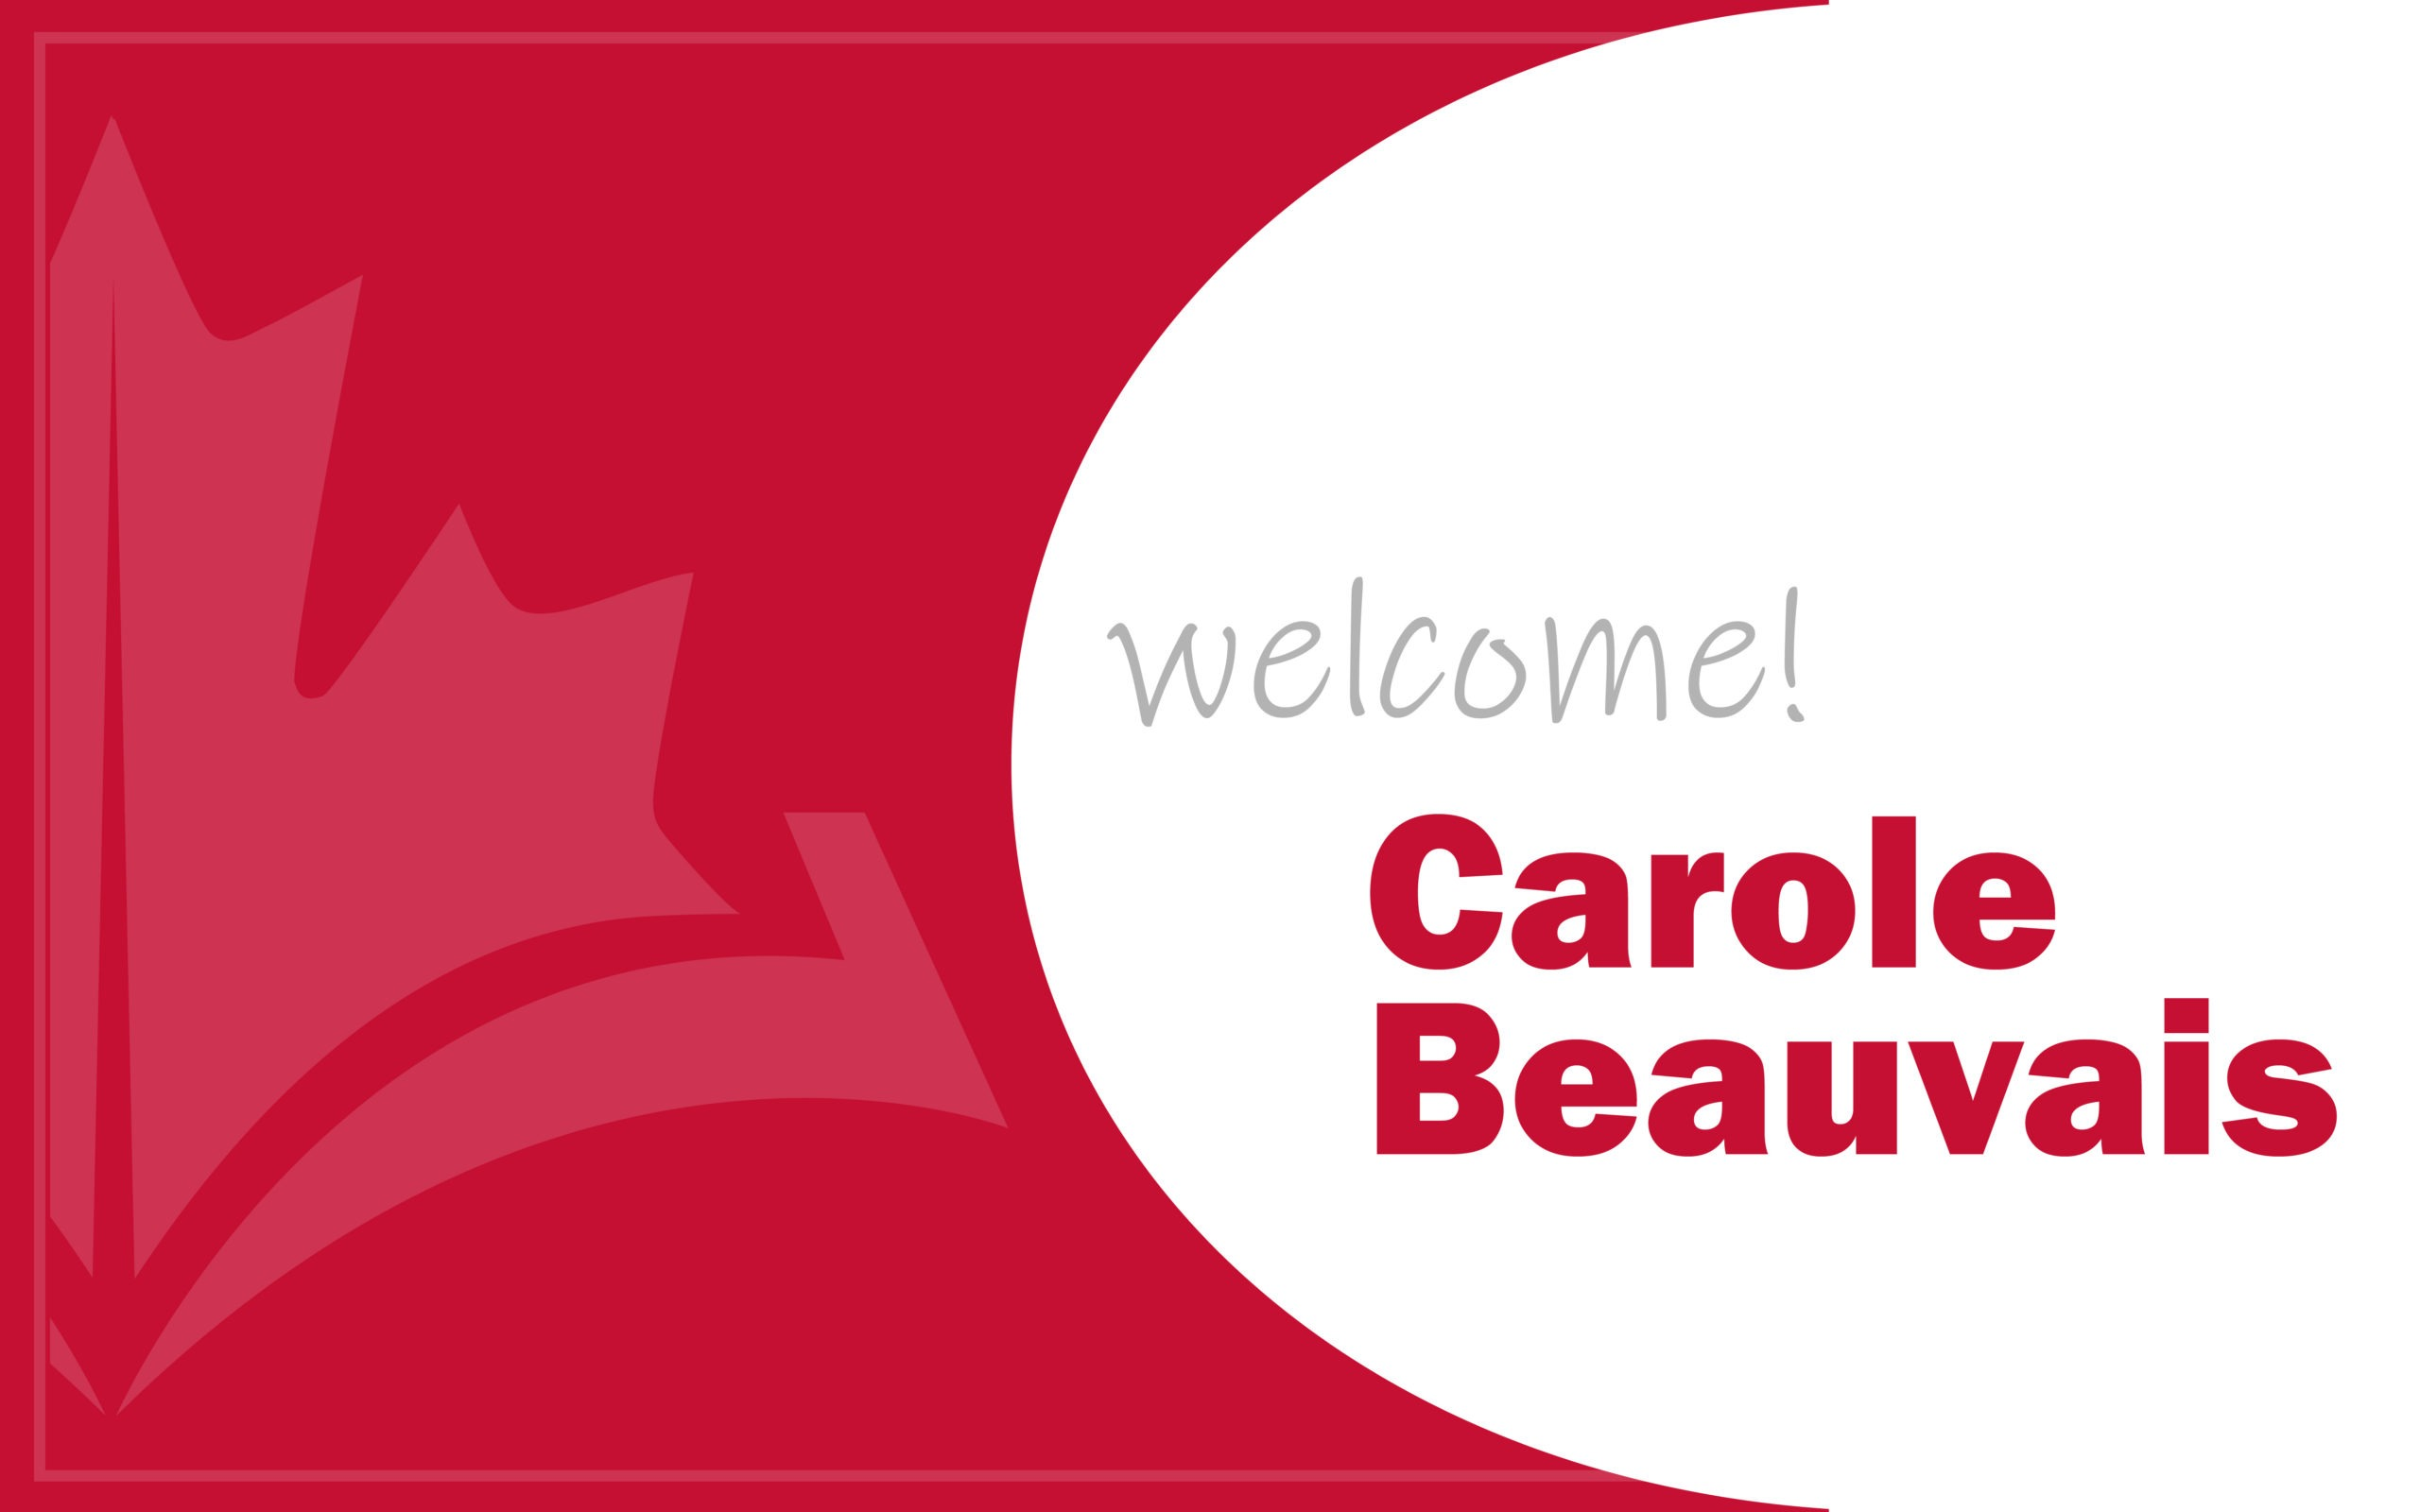 Carole Beauvais joins CAPR as National Director of Evaluation Services